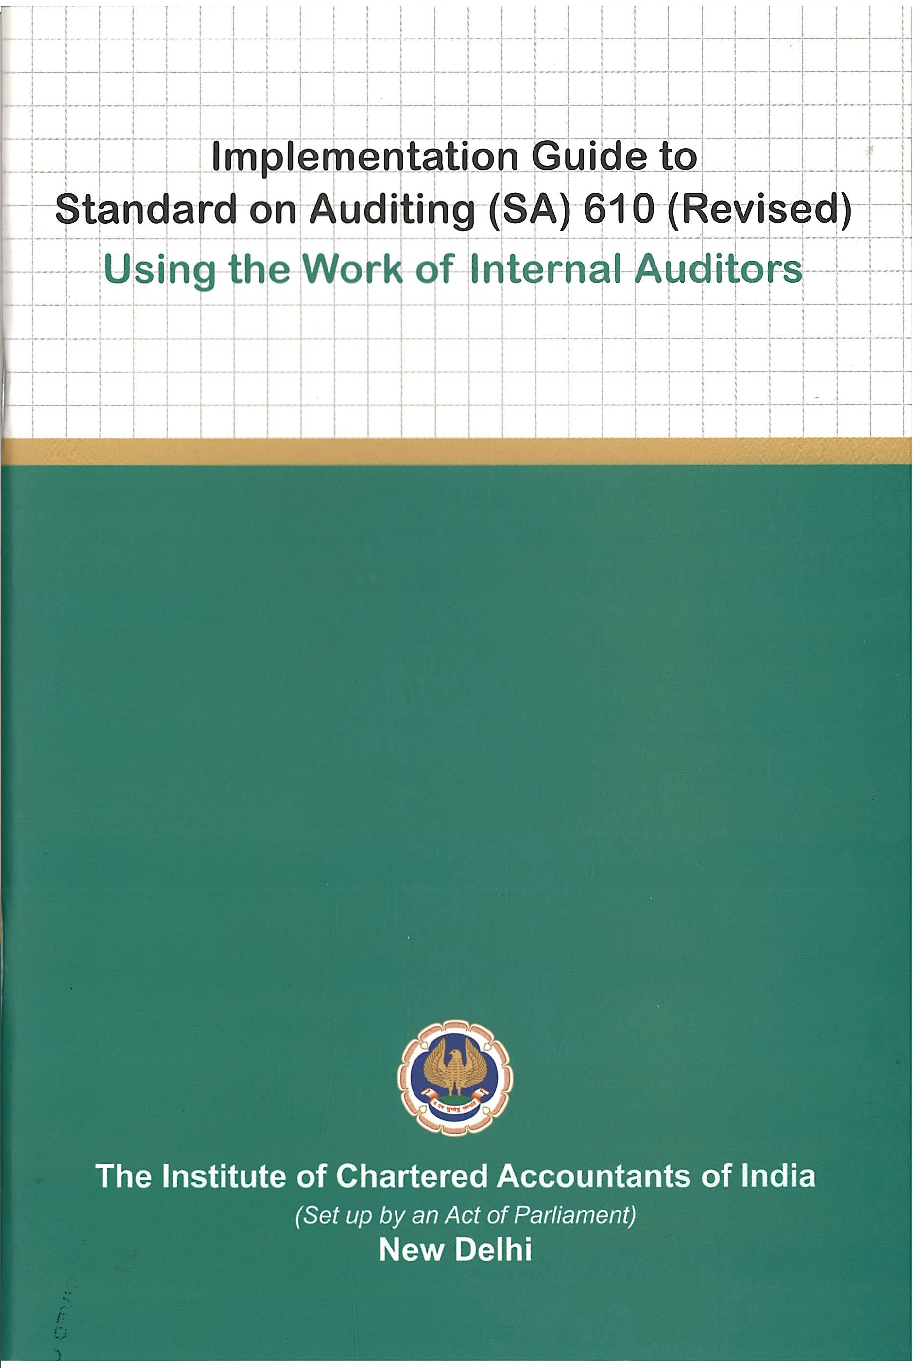 Implementation Guide to Standard on Auditing (SA) 610 (Revised) (October, 2018) Using the Work of Internal Auditors